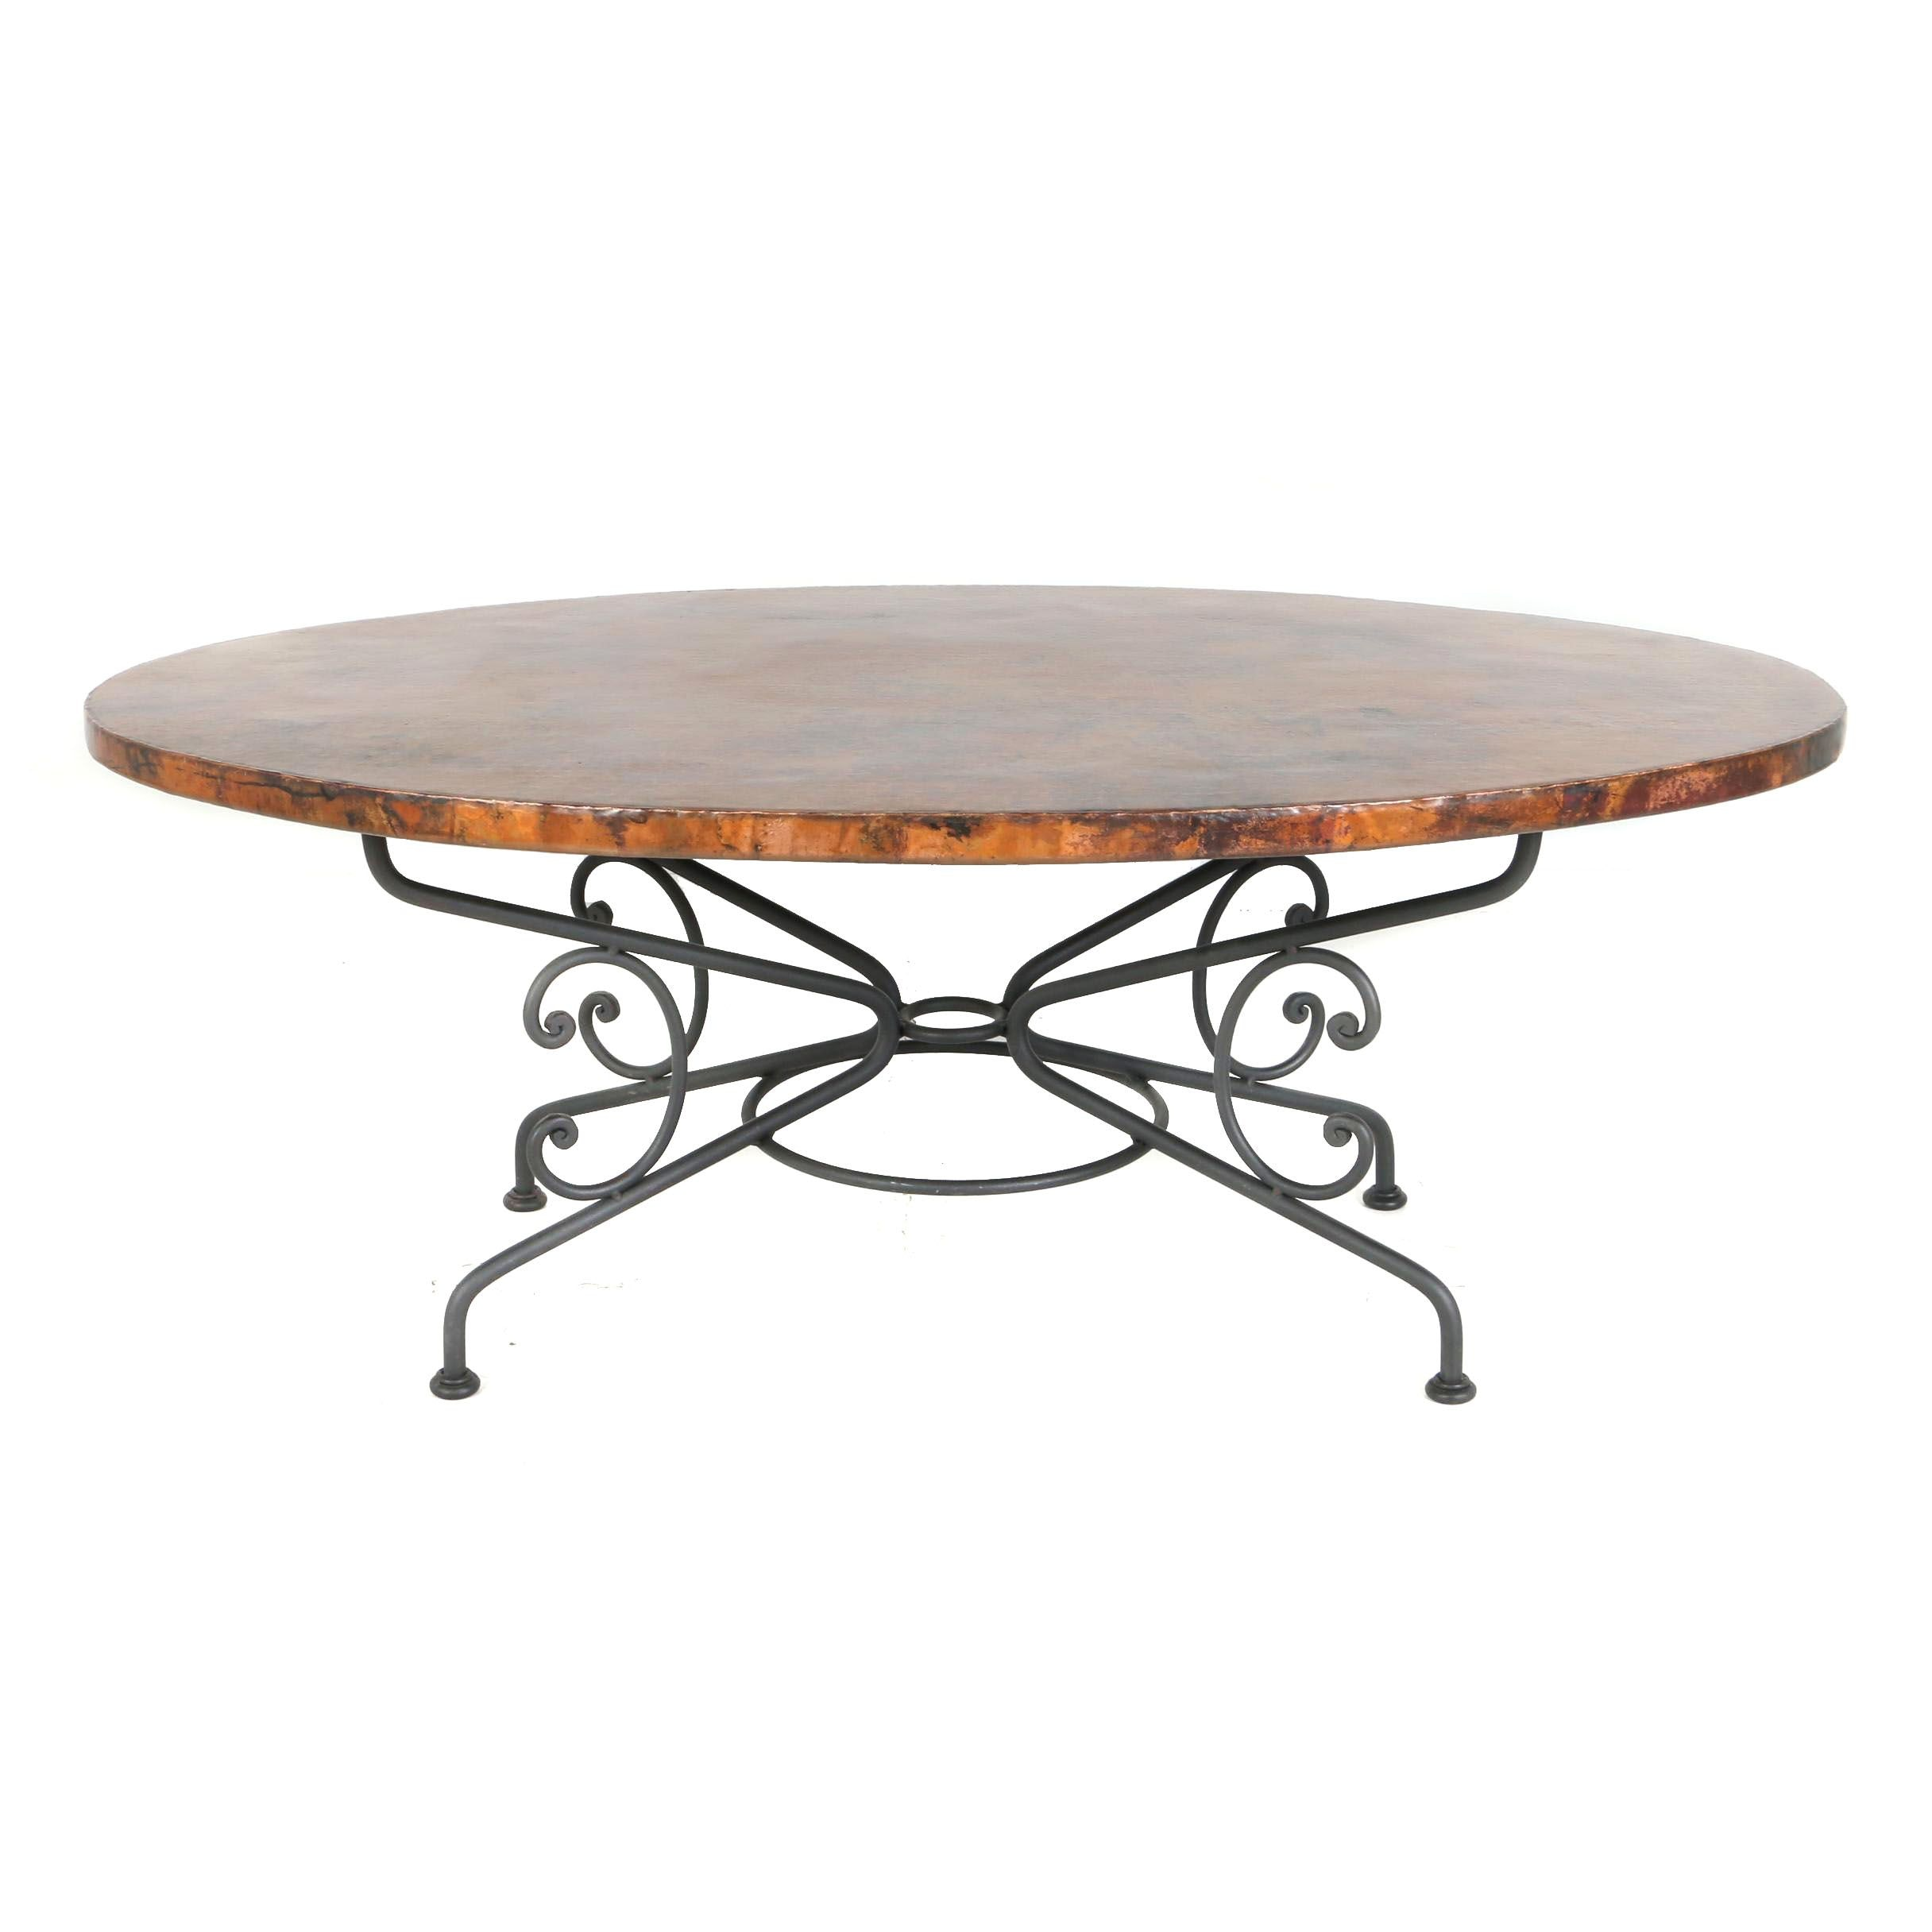 Contemporary Mexican Iron and Copper Oval Dining Table